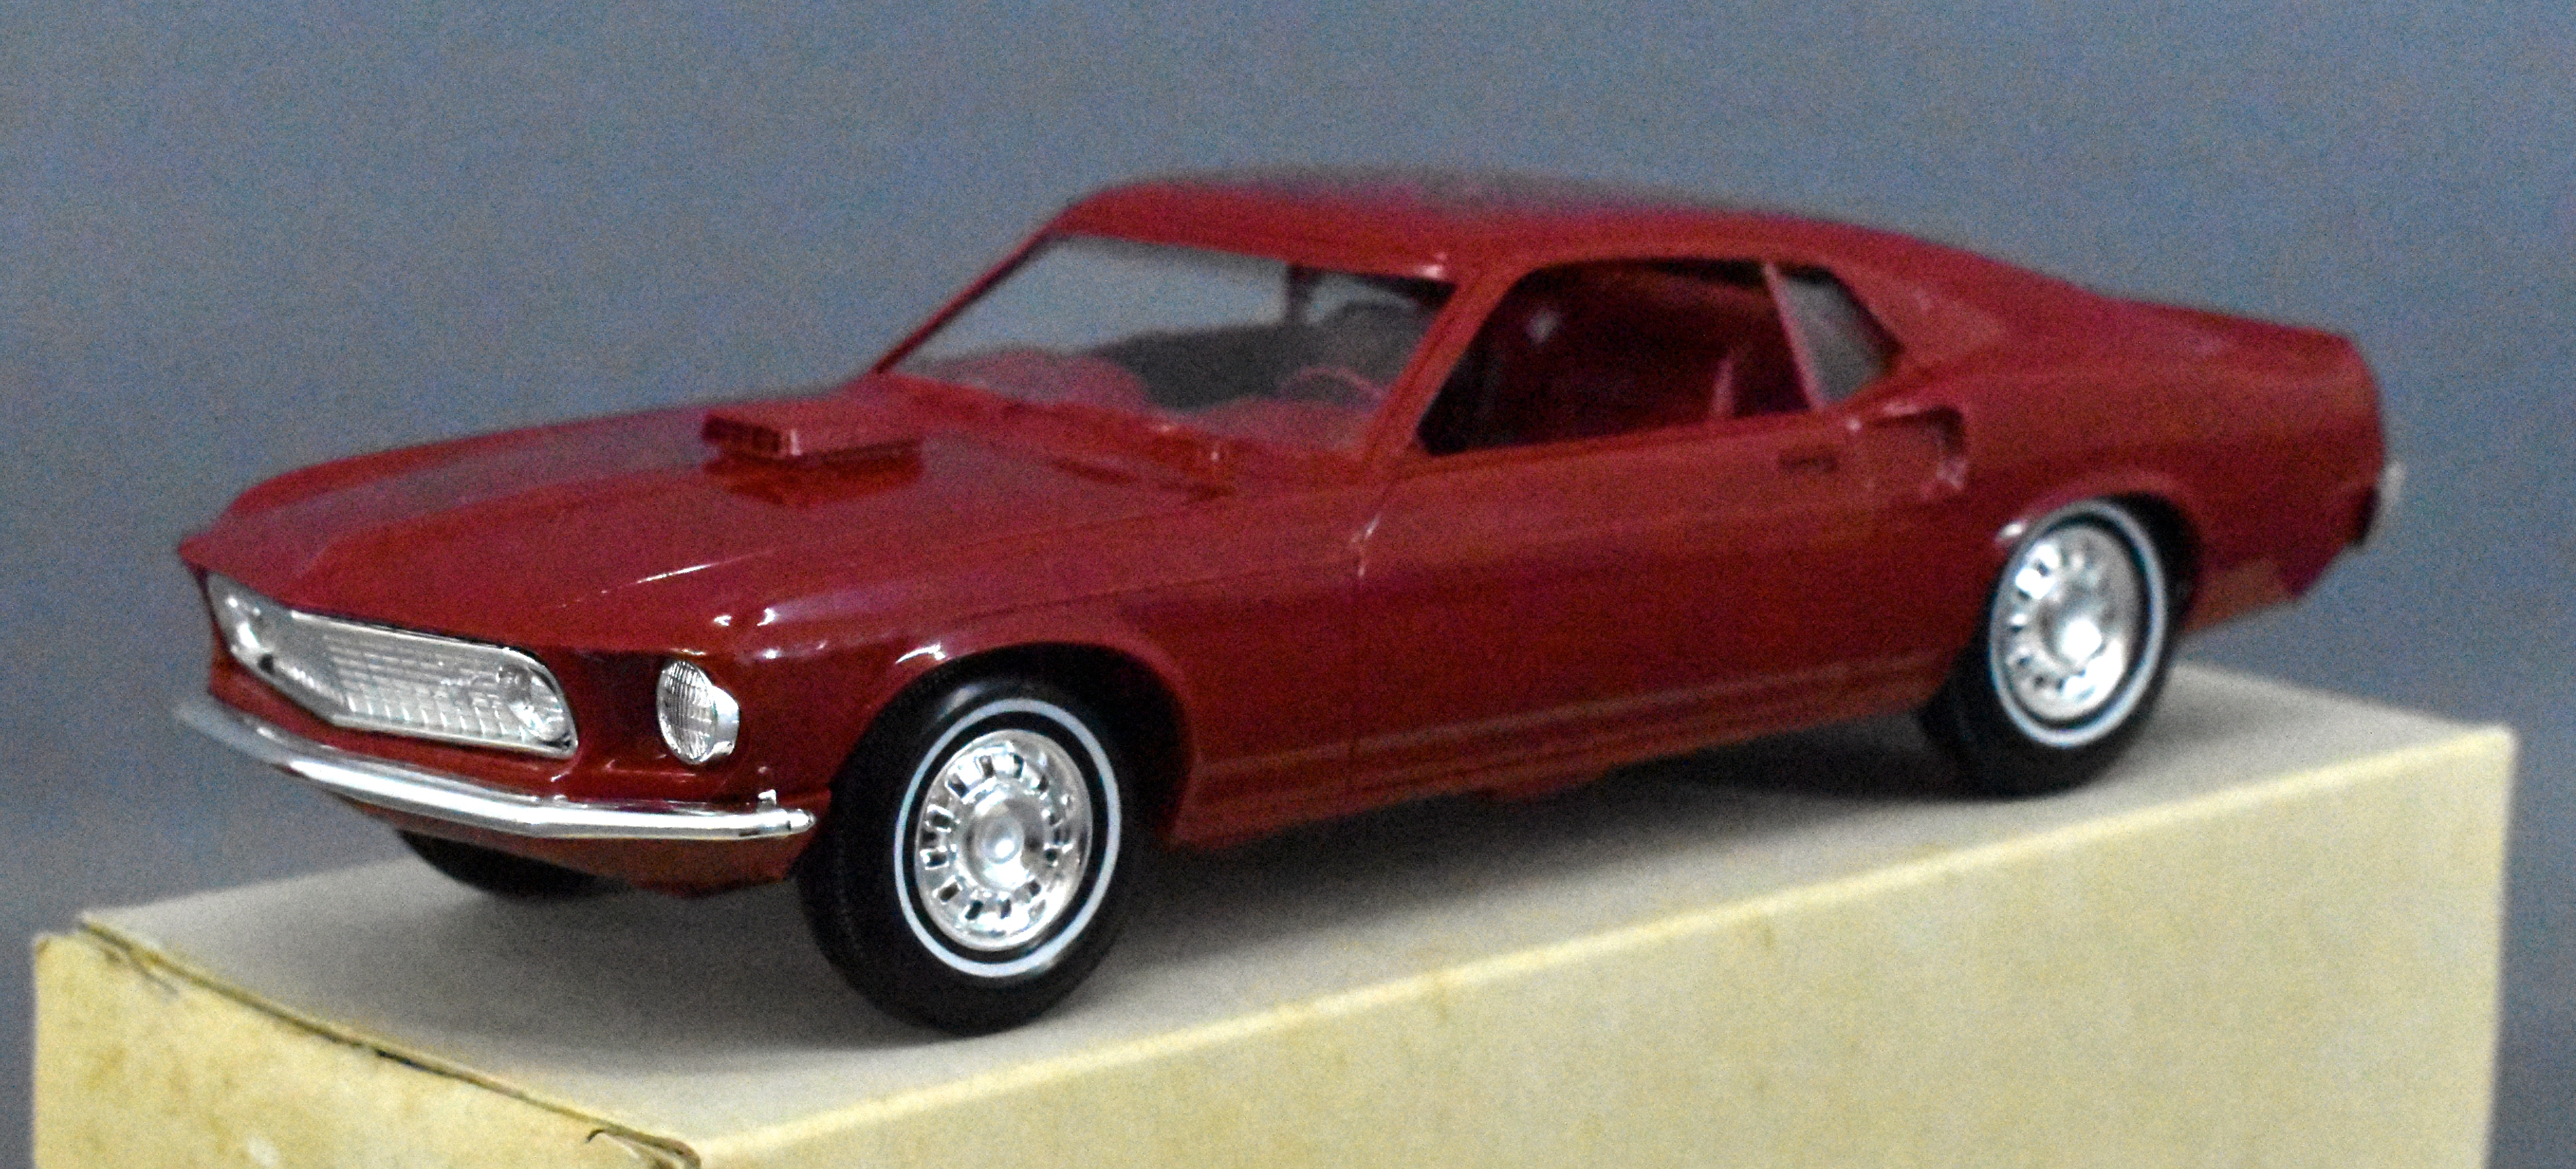 Vintage Promo Cars, Toys, Models, Die Cast, Action Figures And More